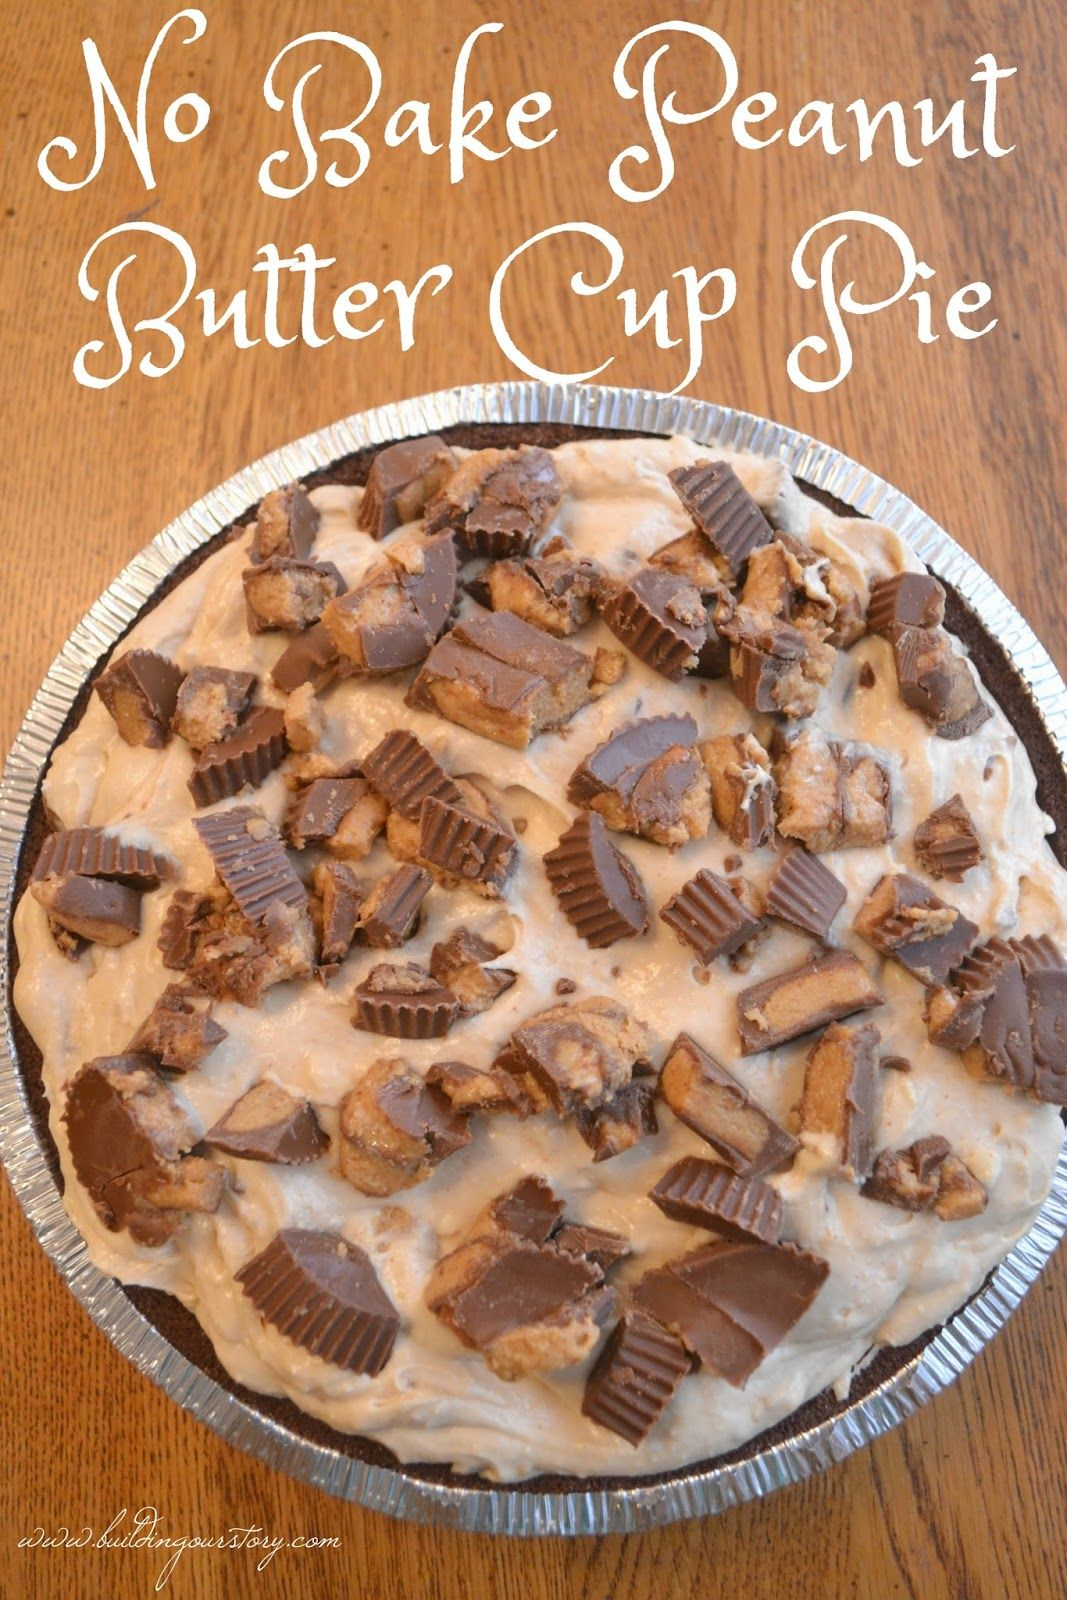 No Bake Peanut Butter Cup Pie #easypierecipes